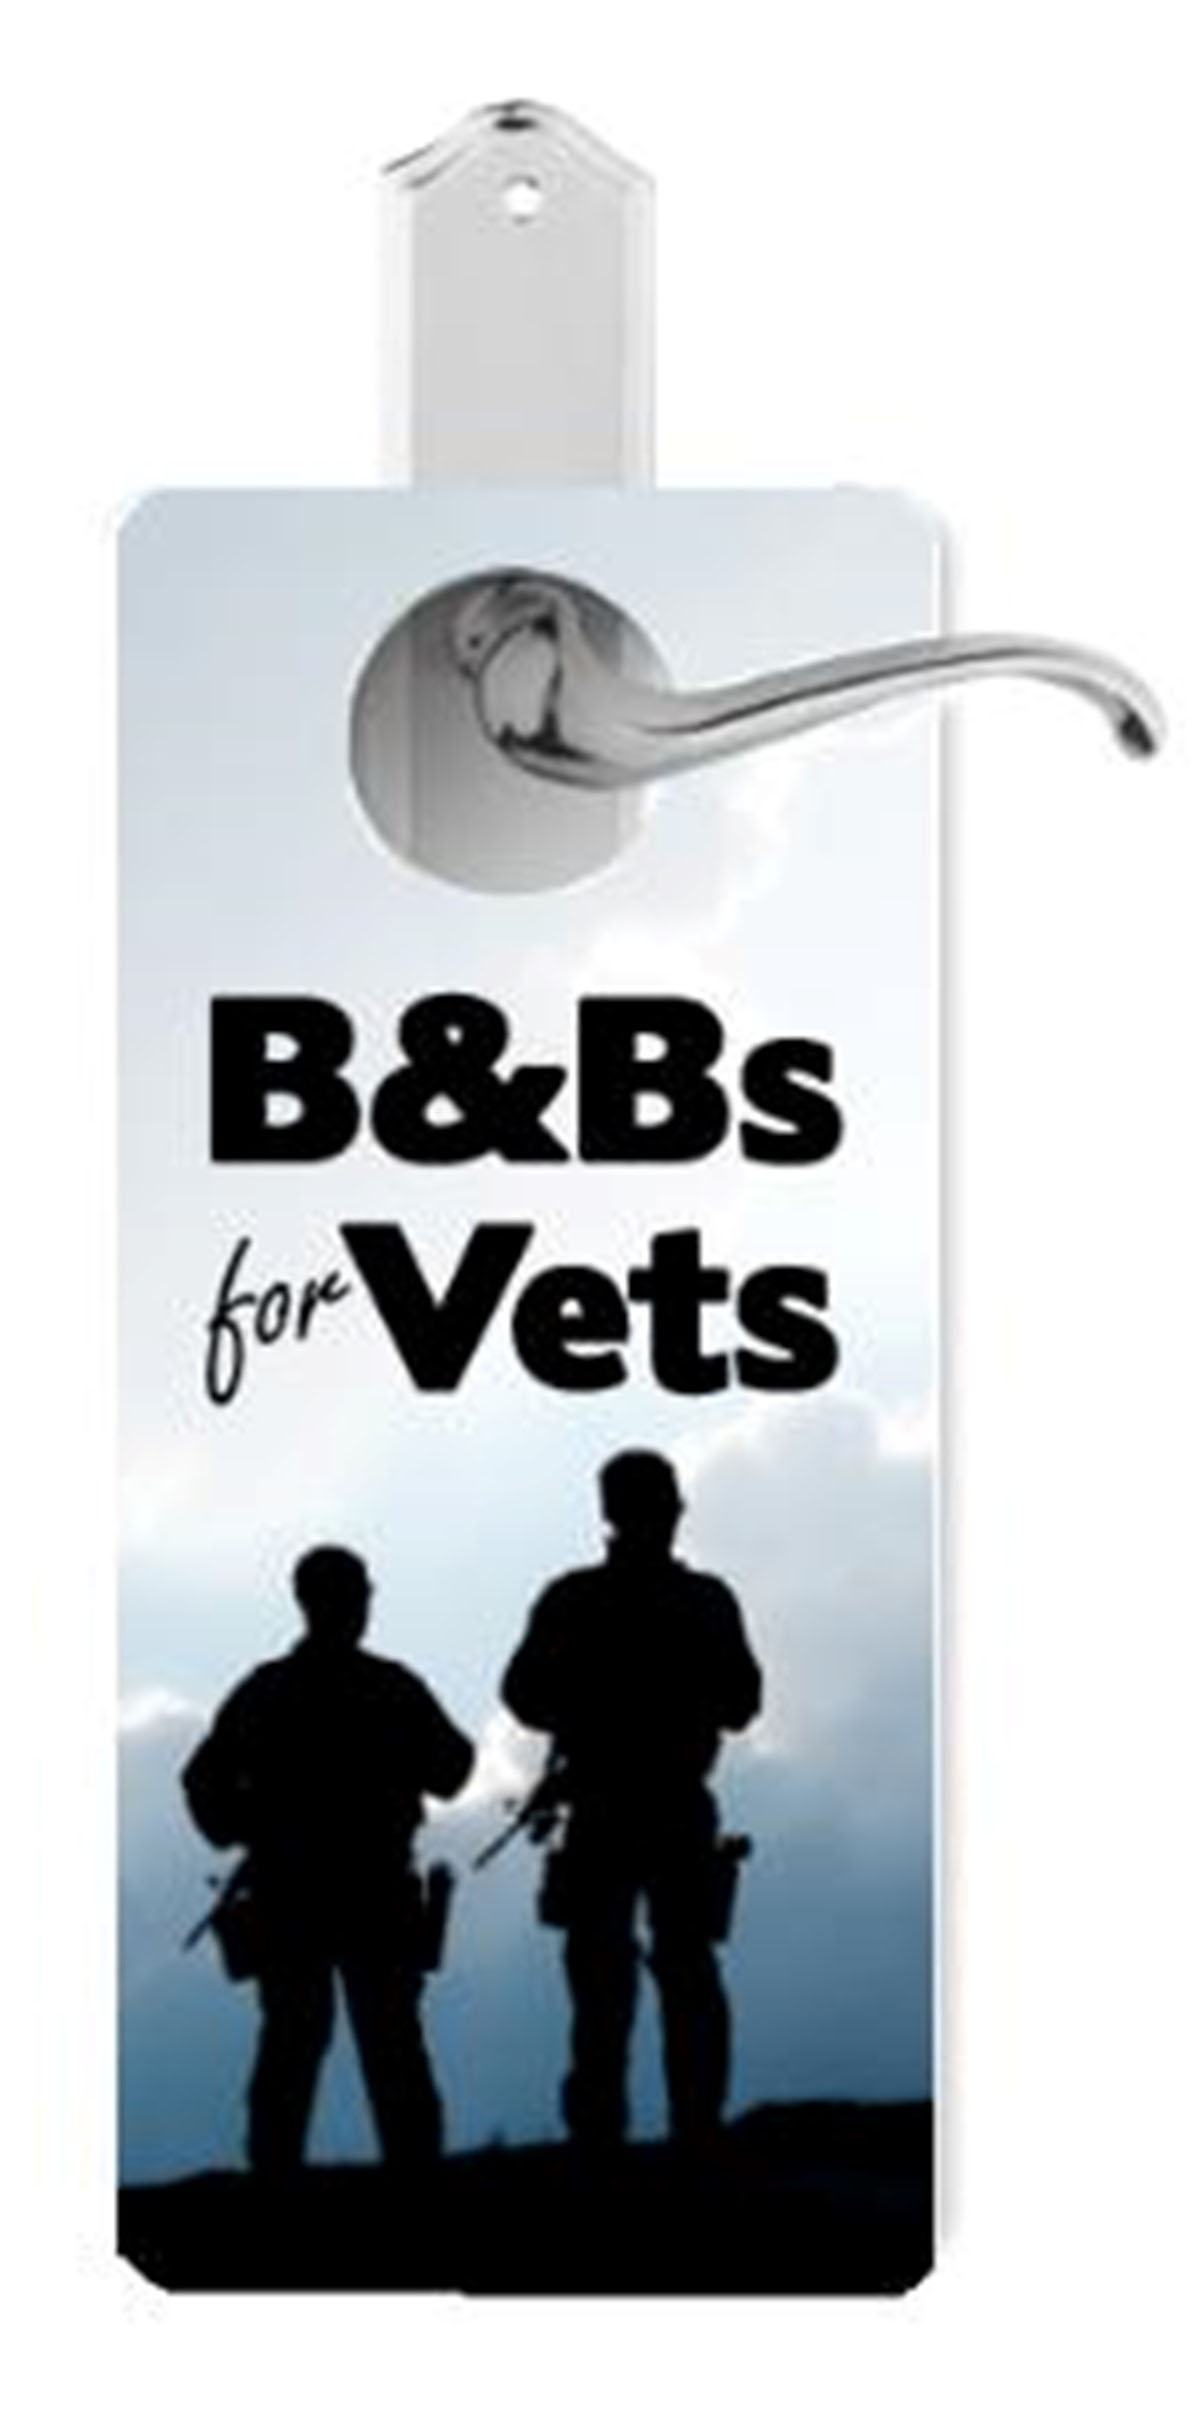 Door Hanger with B&B for Vets in text and silhouette of soldiers